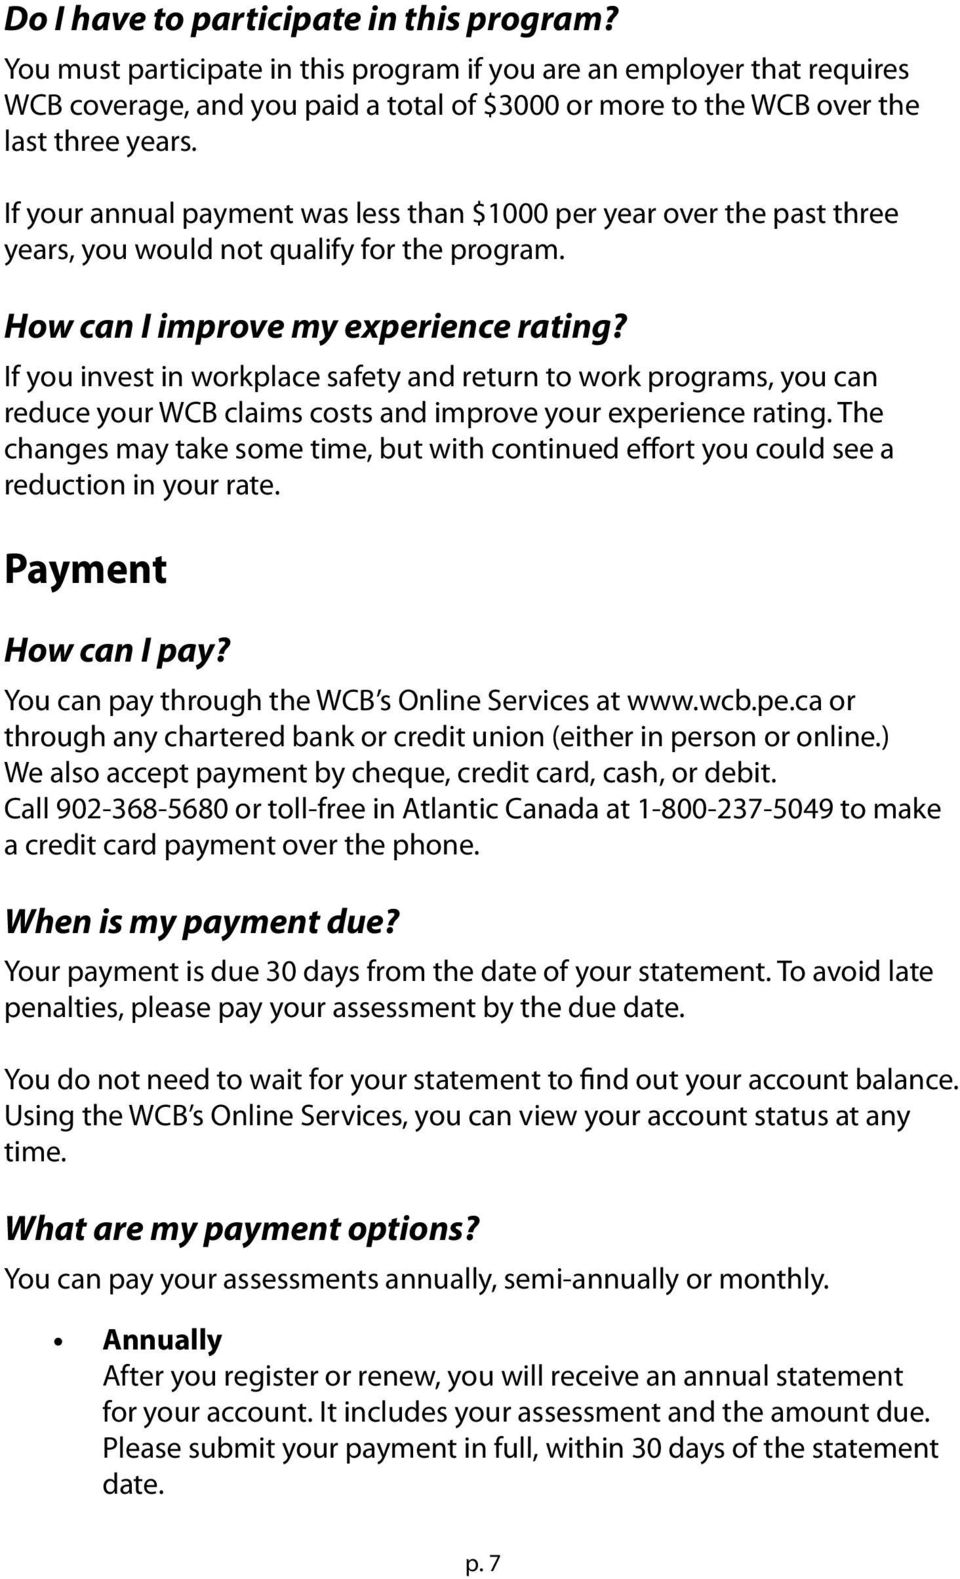 If your annual payment was less than $1000 per year over the past three years, you would not qualify for the program. How can I improve my experience rating?